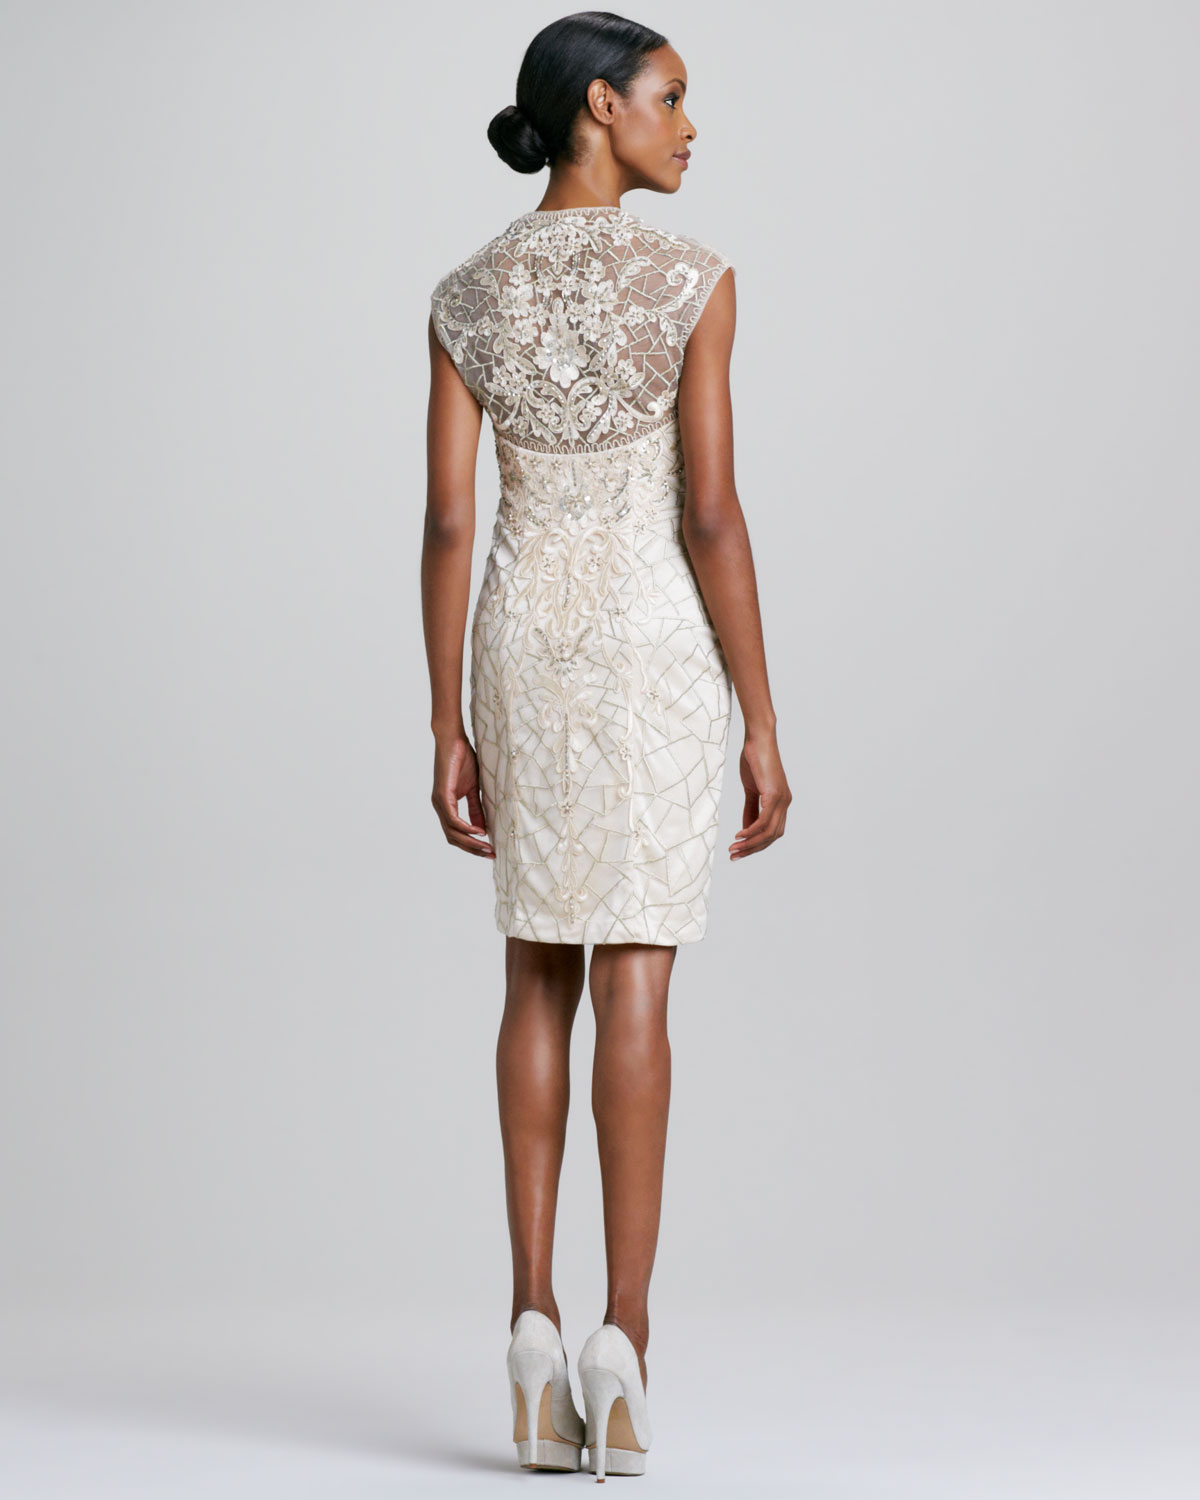 Sue wong Capsleeve Beaded Cocktail Dress in Natural | Lyst